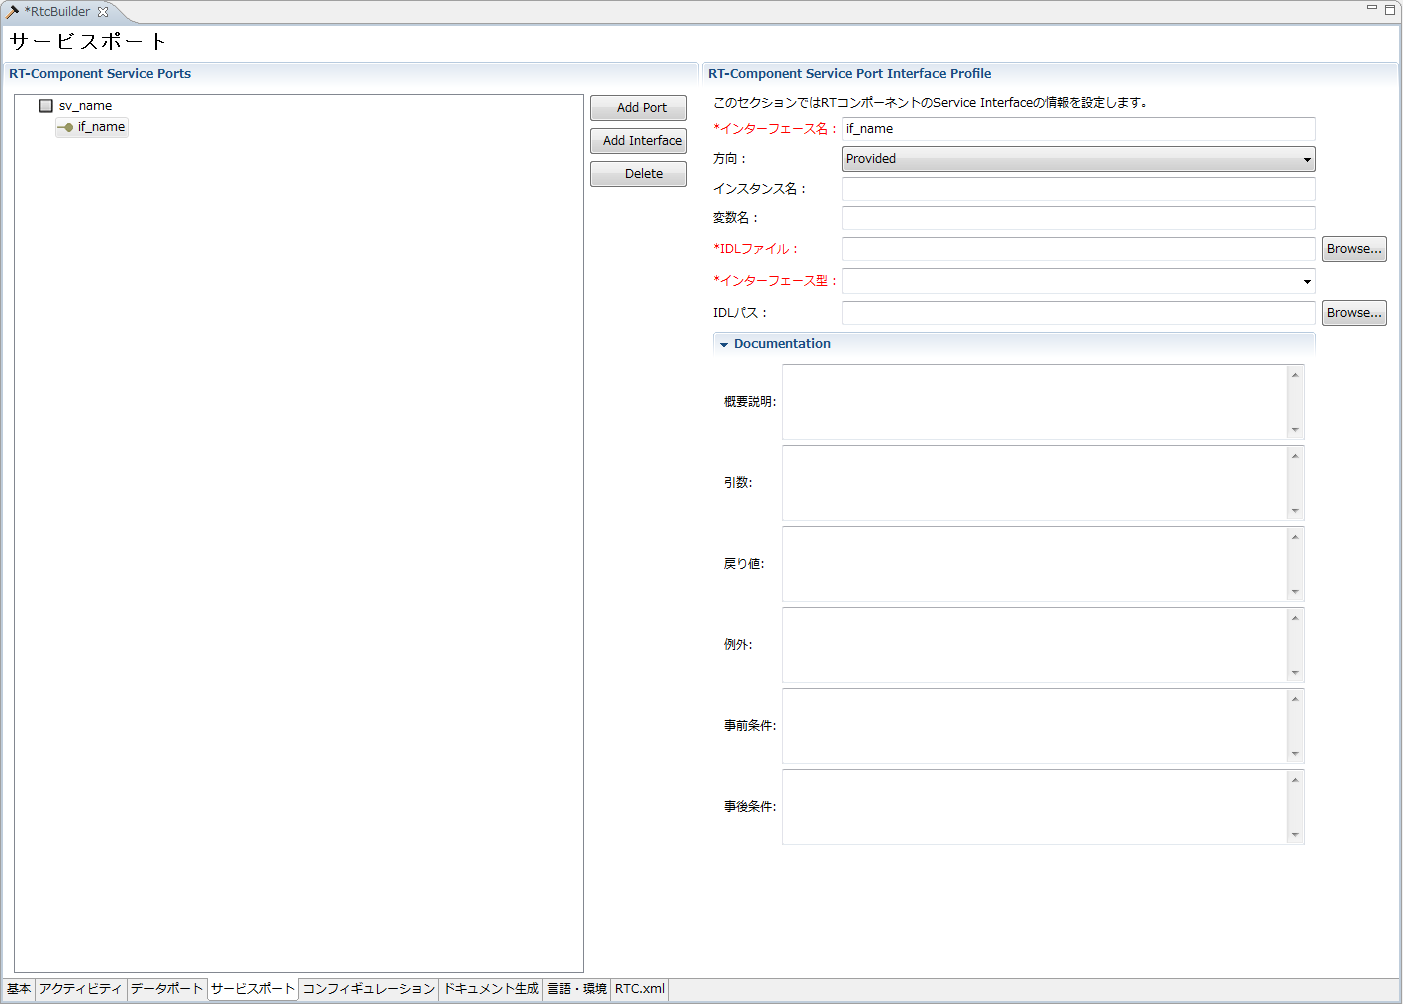 fig3-6InputServicePort2_ja.png